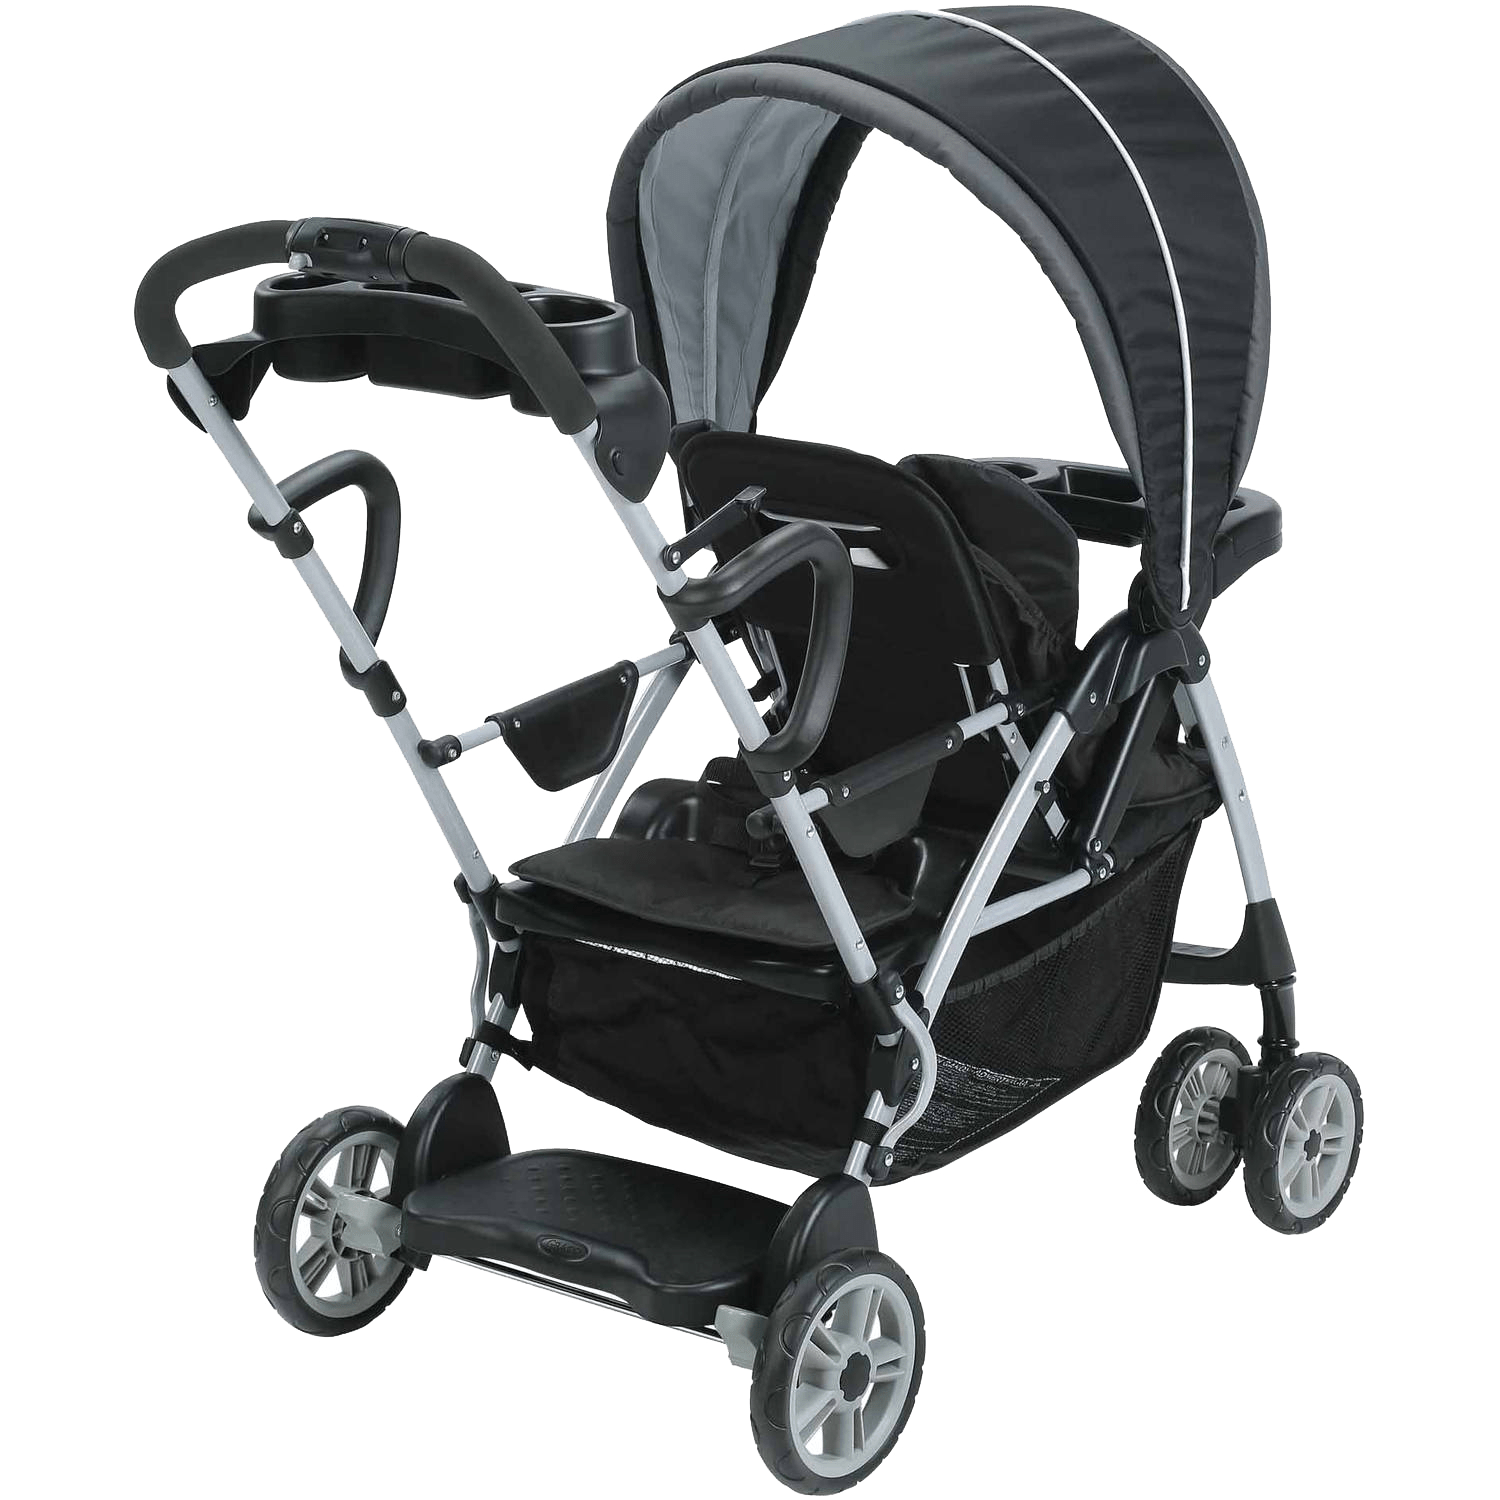 Graco Infant Car Seat Stroller Instructions Graco Roomfor2 Click Connect Stand And Ride Double Stroller Gotham Walmart